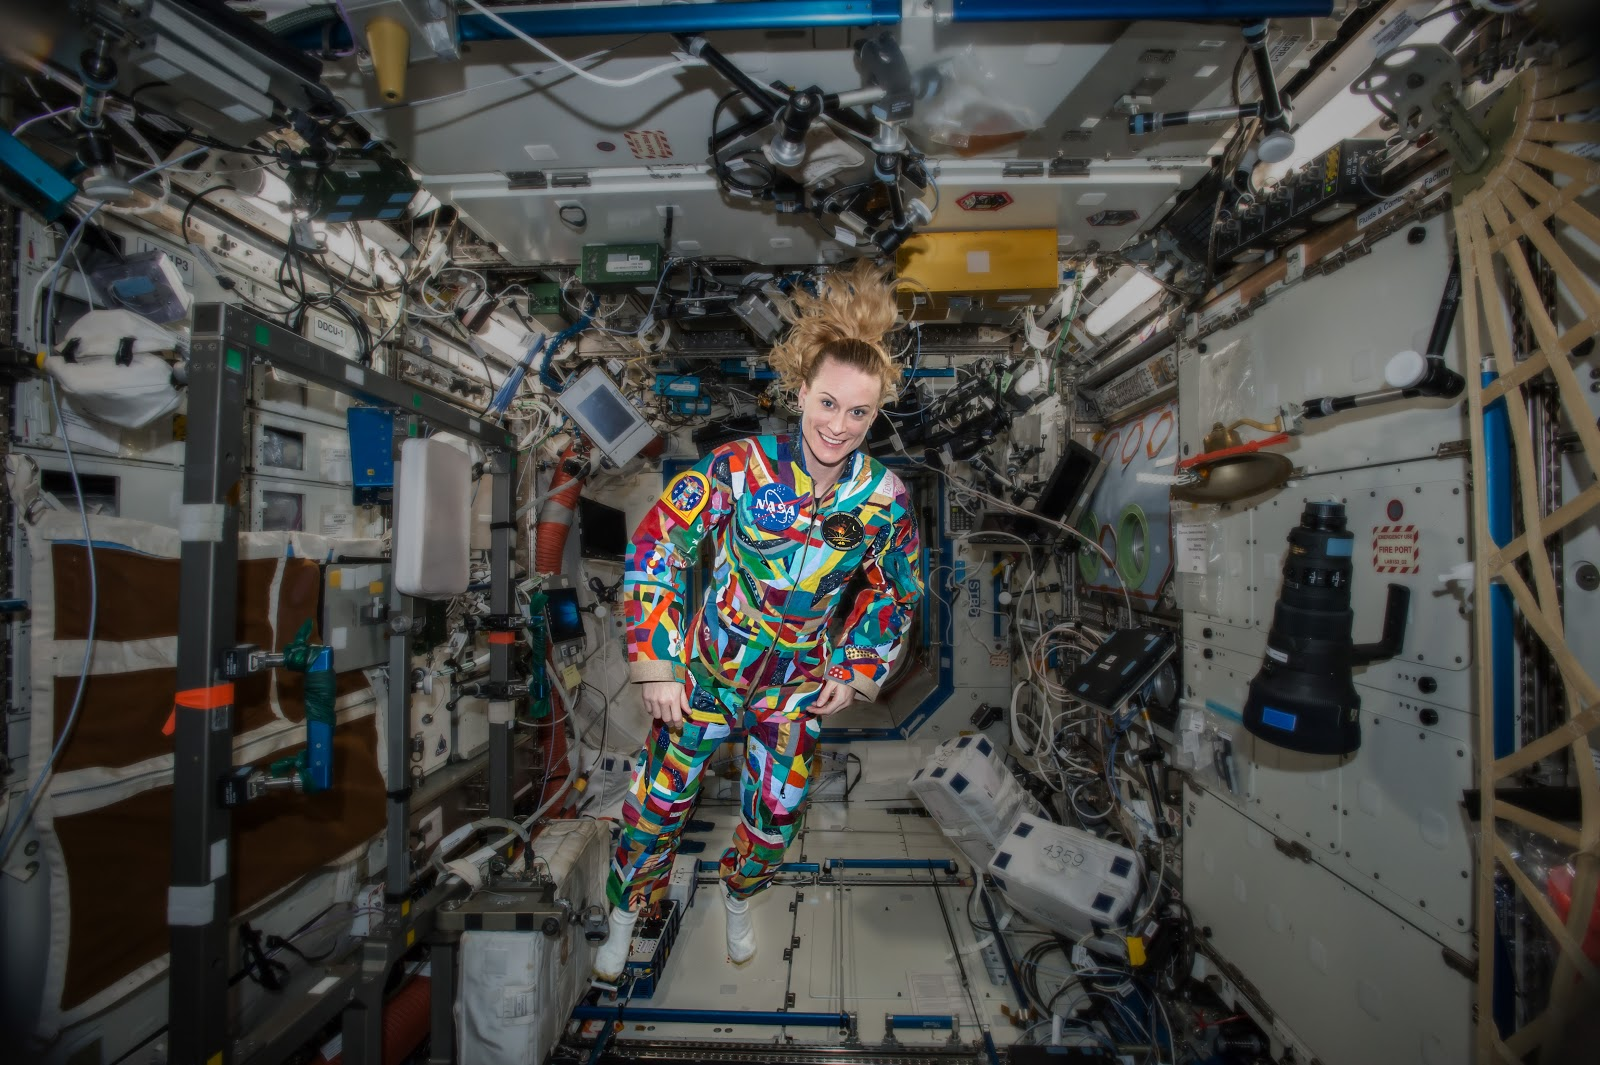 Kate Rubins wears a space suit decorated by patients at the MD Anderson Cancer Center in the International Space Station. All images courtesy of NASA.